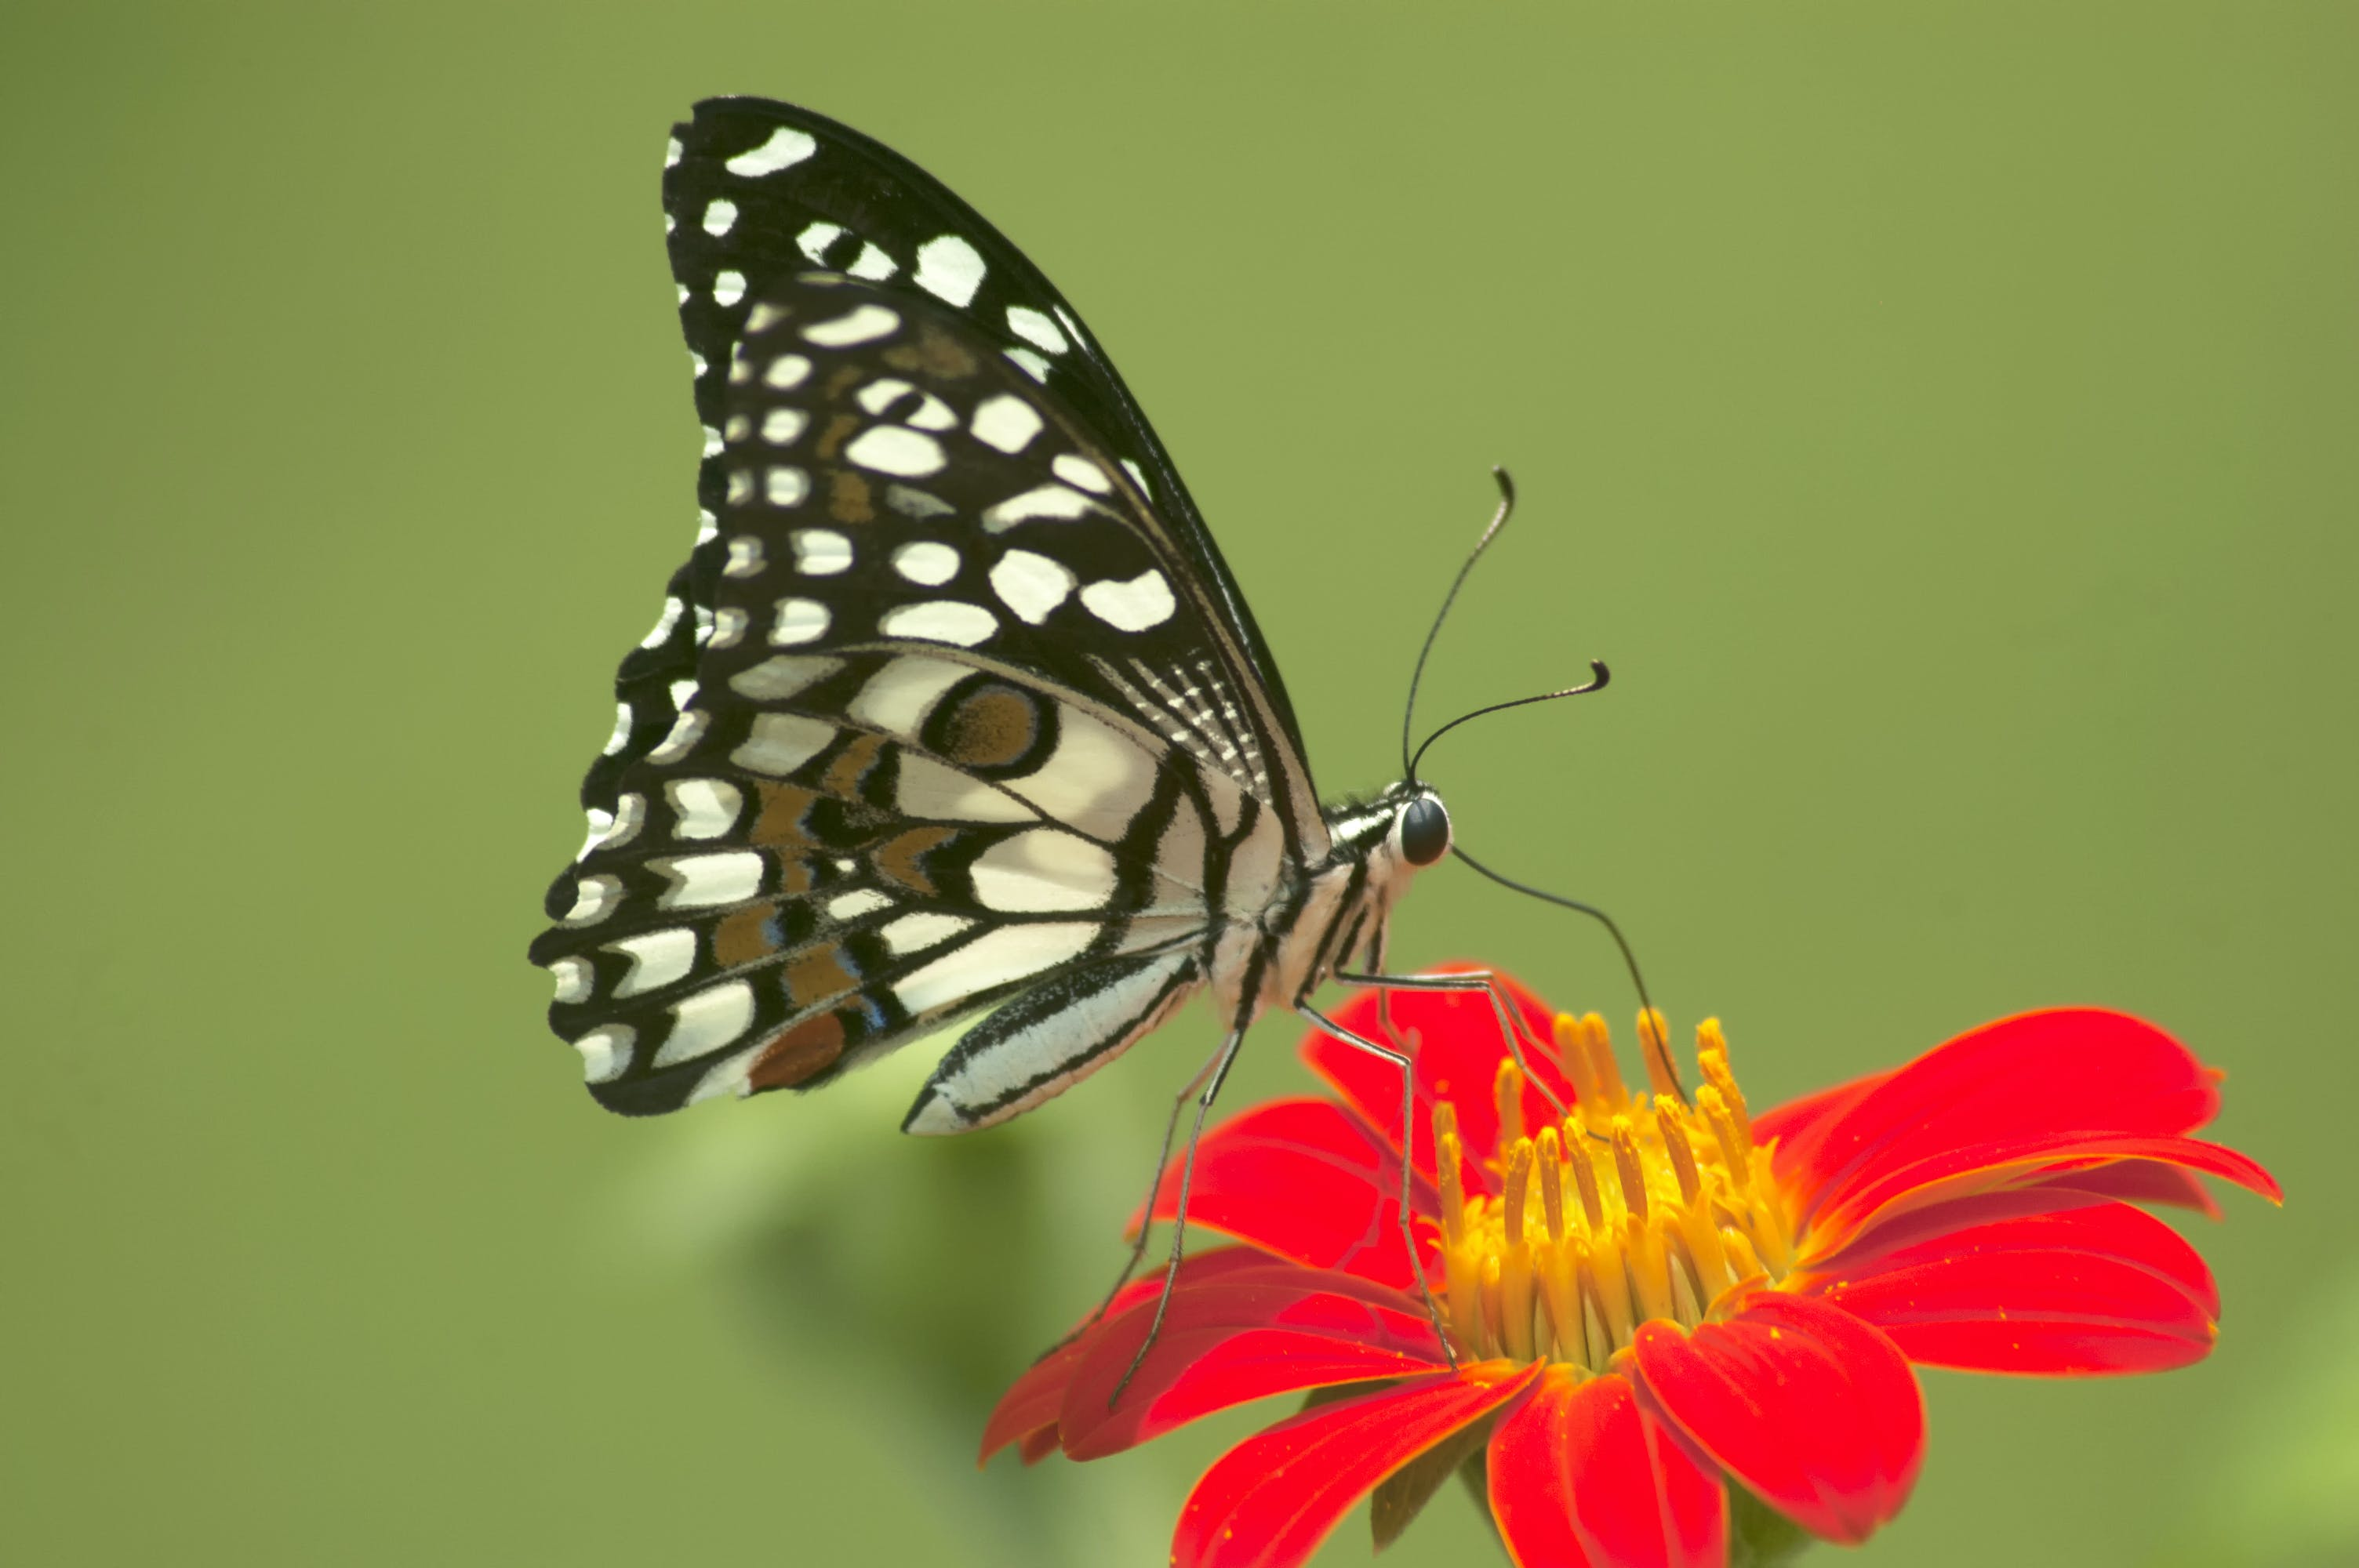 Free stock photo of butterfly on a flower, Butterfly sucking nectar, common lime butterfly